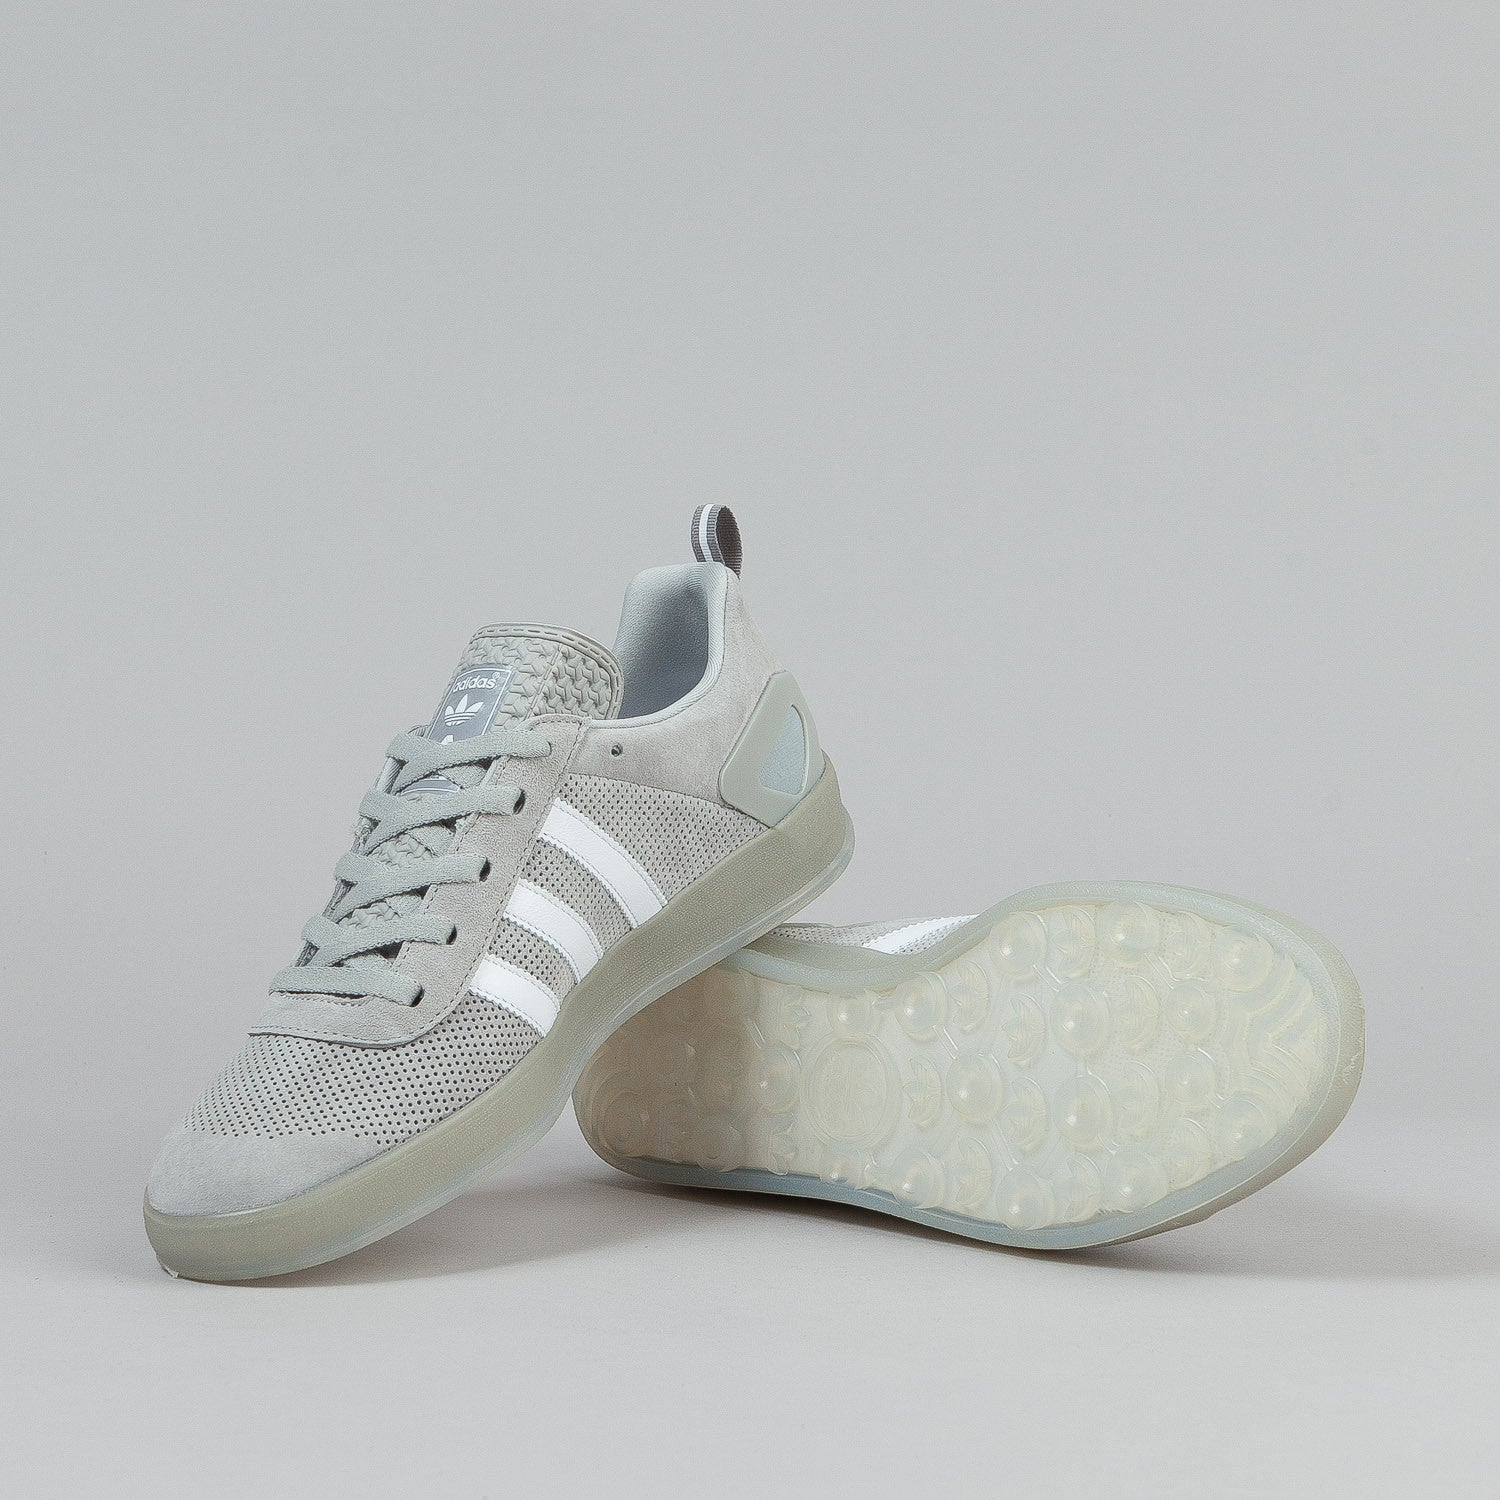 Adidas X Palace Pro Shoes - Stone / White / Black